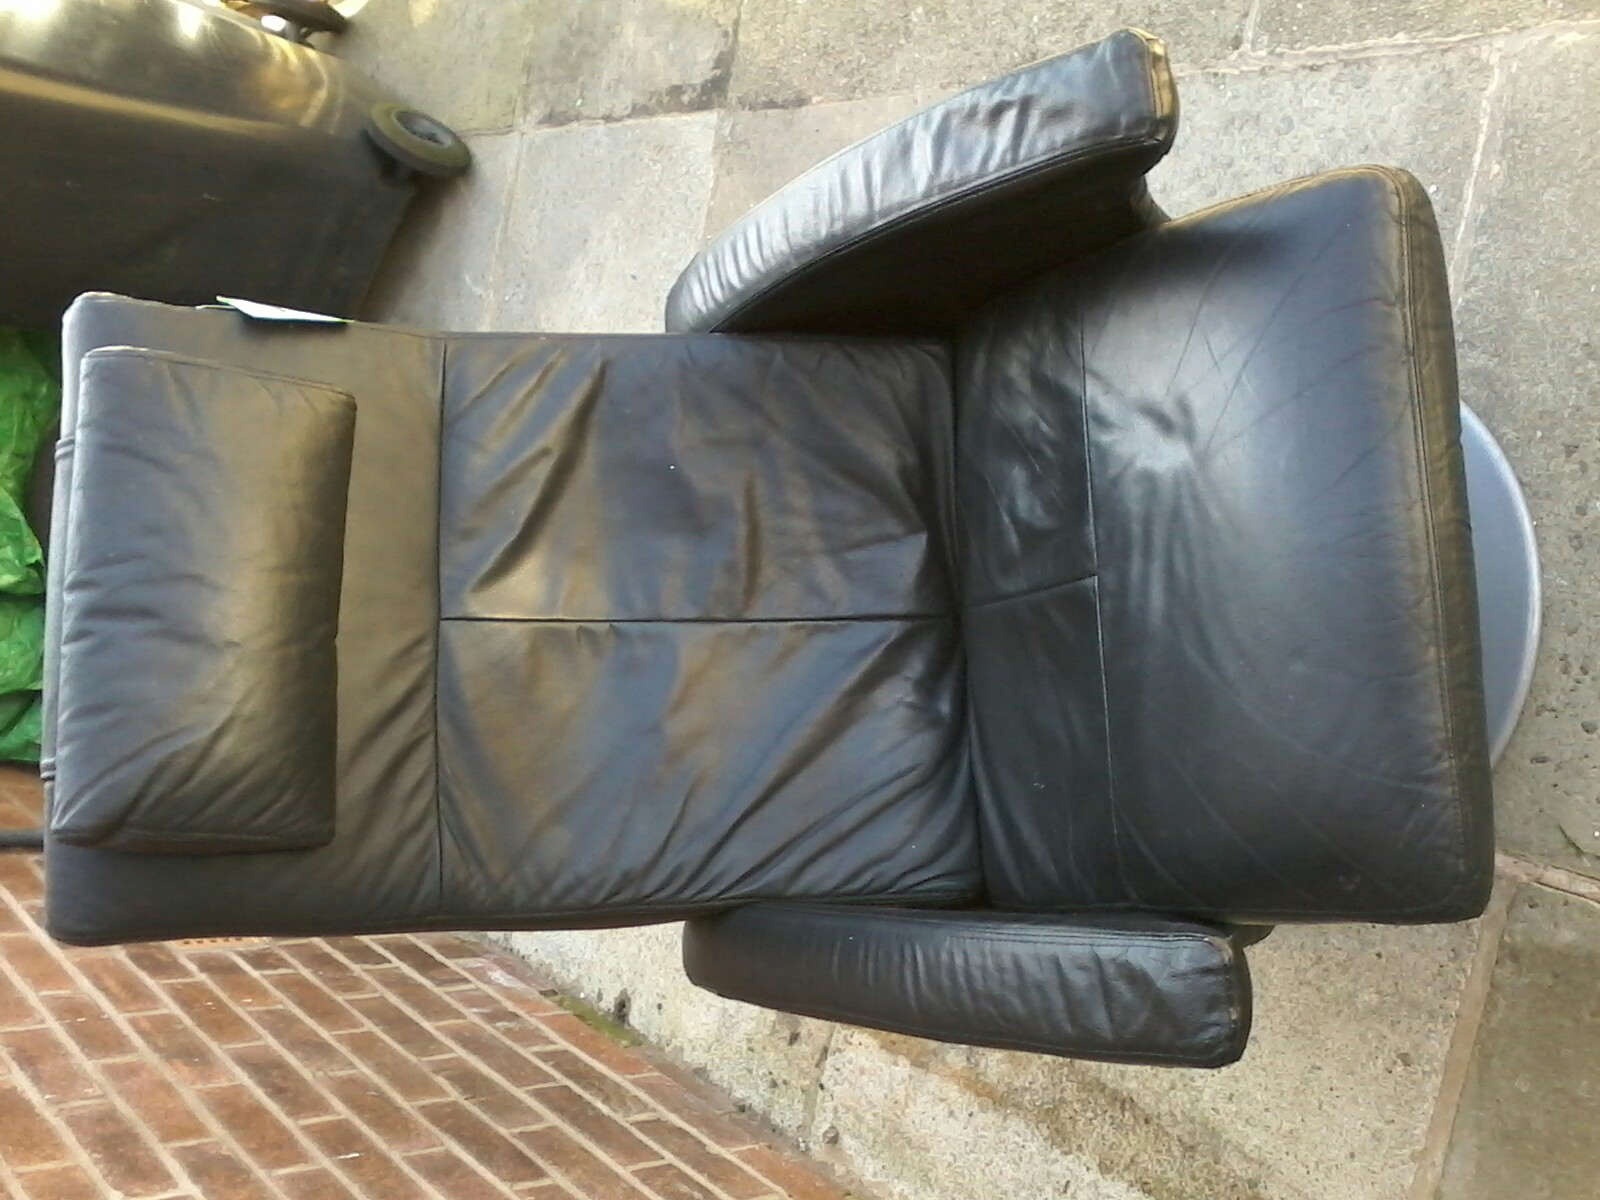 reclining chair - Second Hand Household Furniture Buy and Sell in